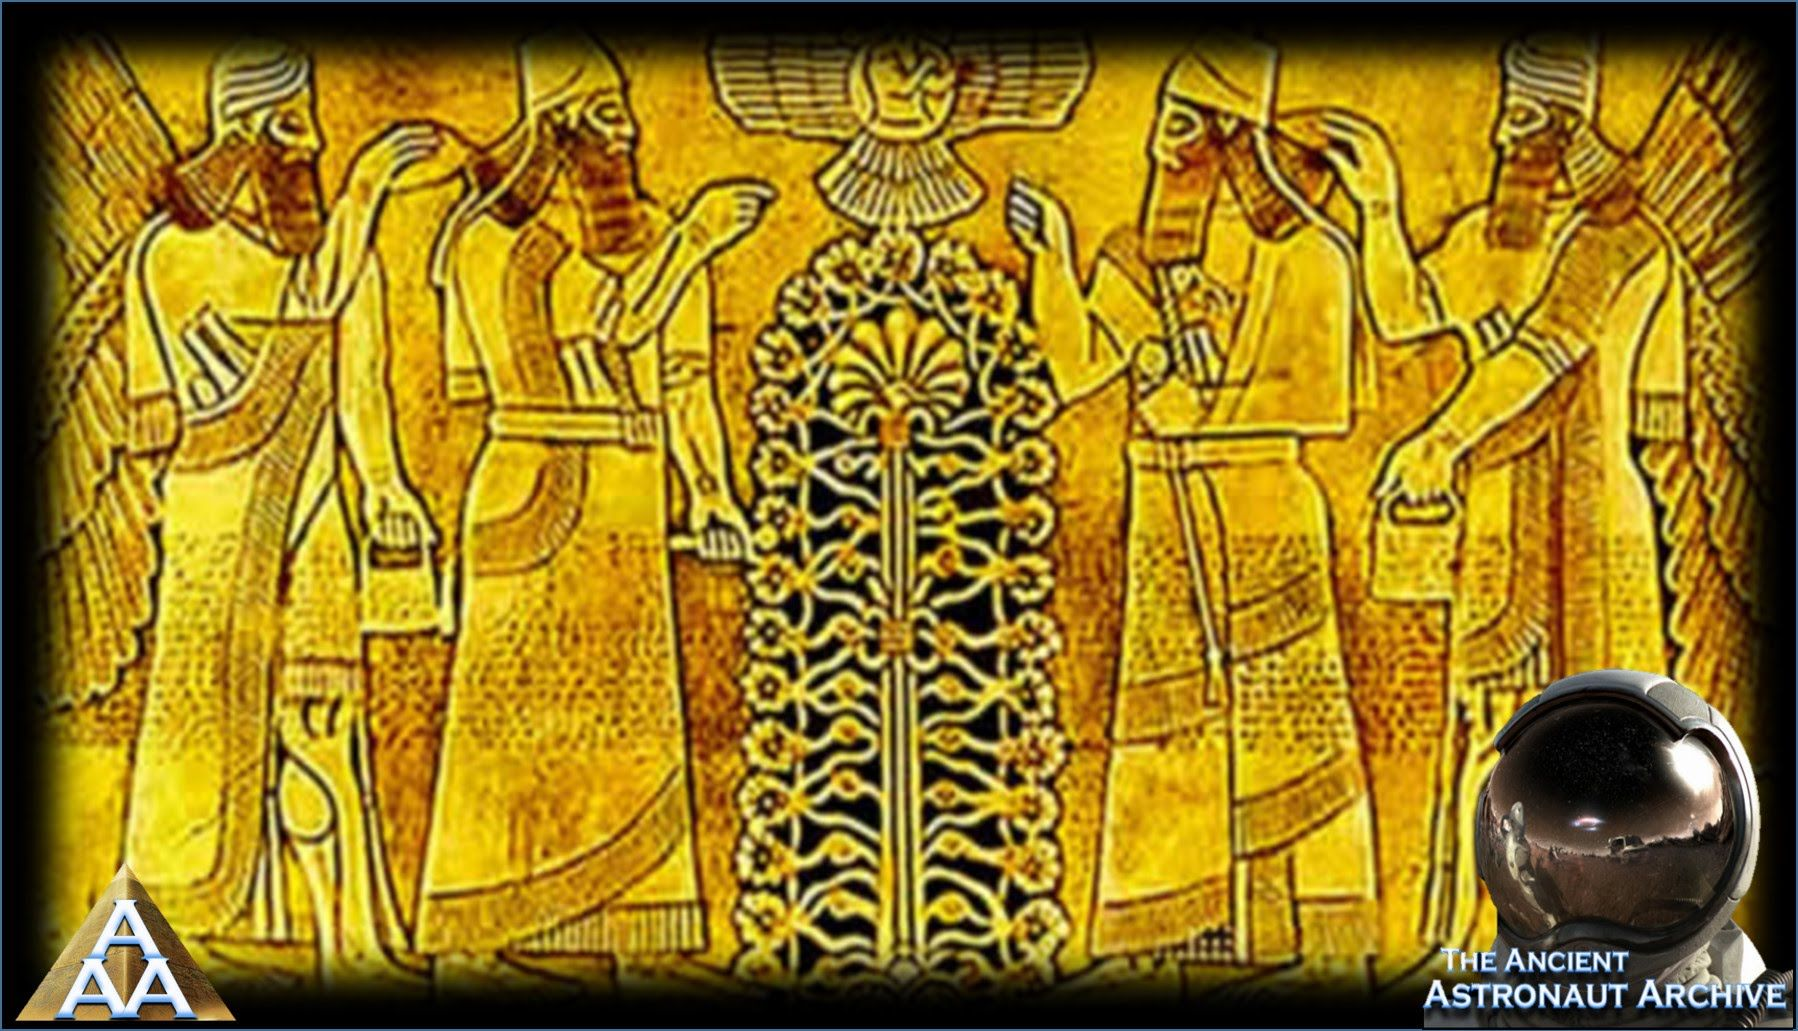 an analysis of the sumerian civilization These are hard facts supported by genetic, archaeological, mythological, linguistic evidence including my own history and linguistics research and analysis results of the genetic studies done in 2018 continue to reconfirm these facts moreover, even the prior civilization in europe, neolithic farming culture, was introduced.